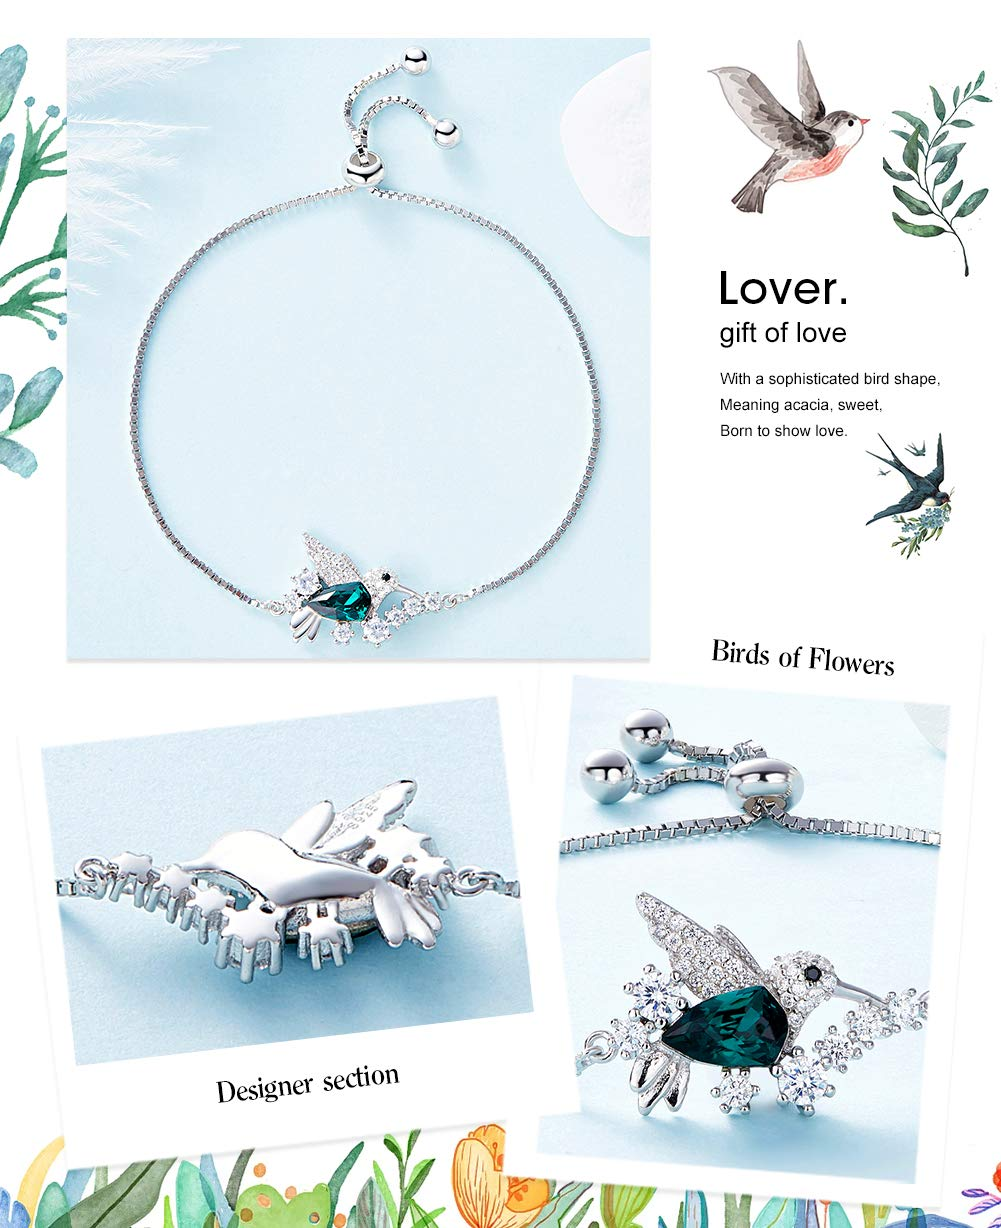 CDE Bracelets for Women, Silver Bracelet Hummingbird Crystal Bangles Charm Jewelry Enriched with Swarovski Crystals by CDE (Image #4)